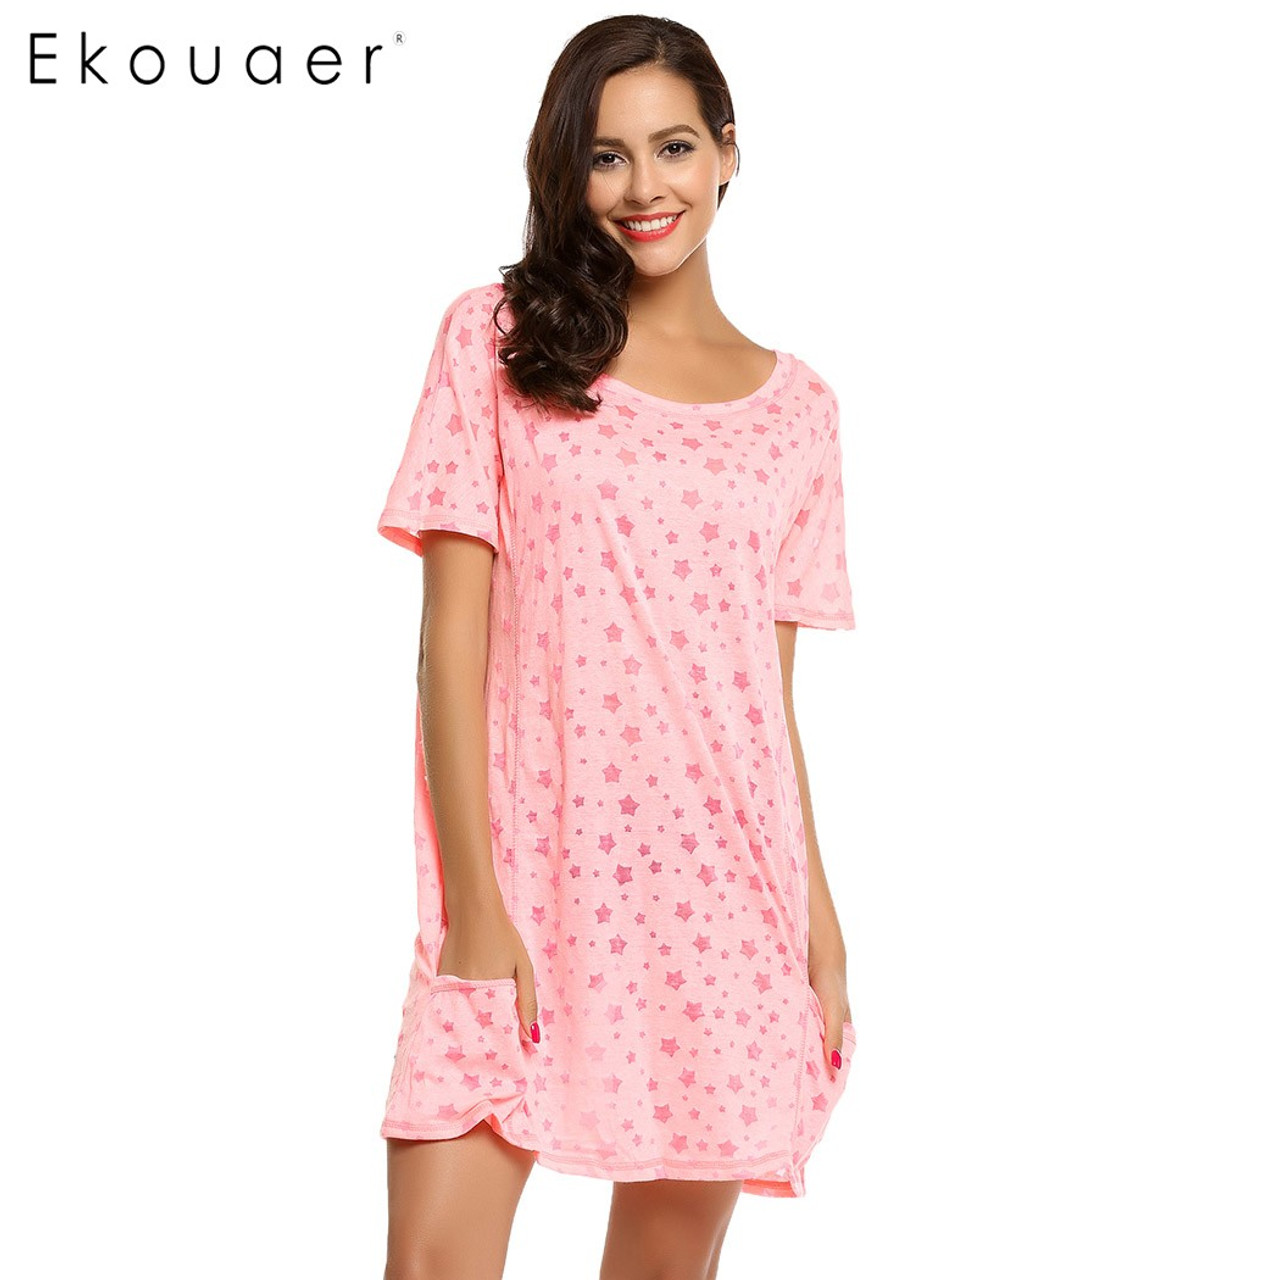 ... Ekouaer Brand Casual Loose Nightgown Summer Star Print Nightwear Home  Clothing Women O-Neck Short ... 6e662634a